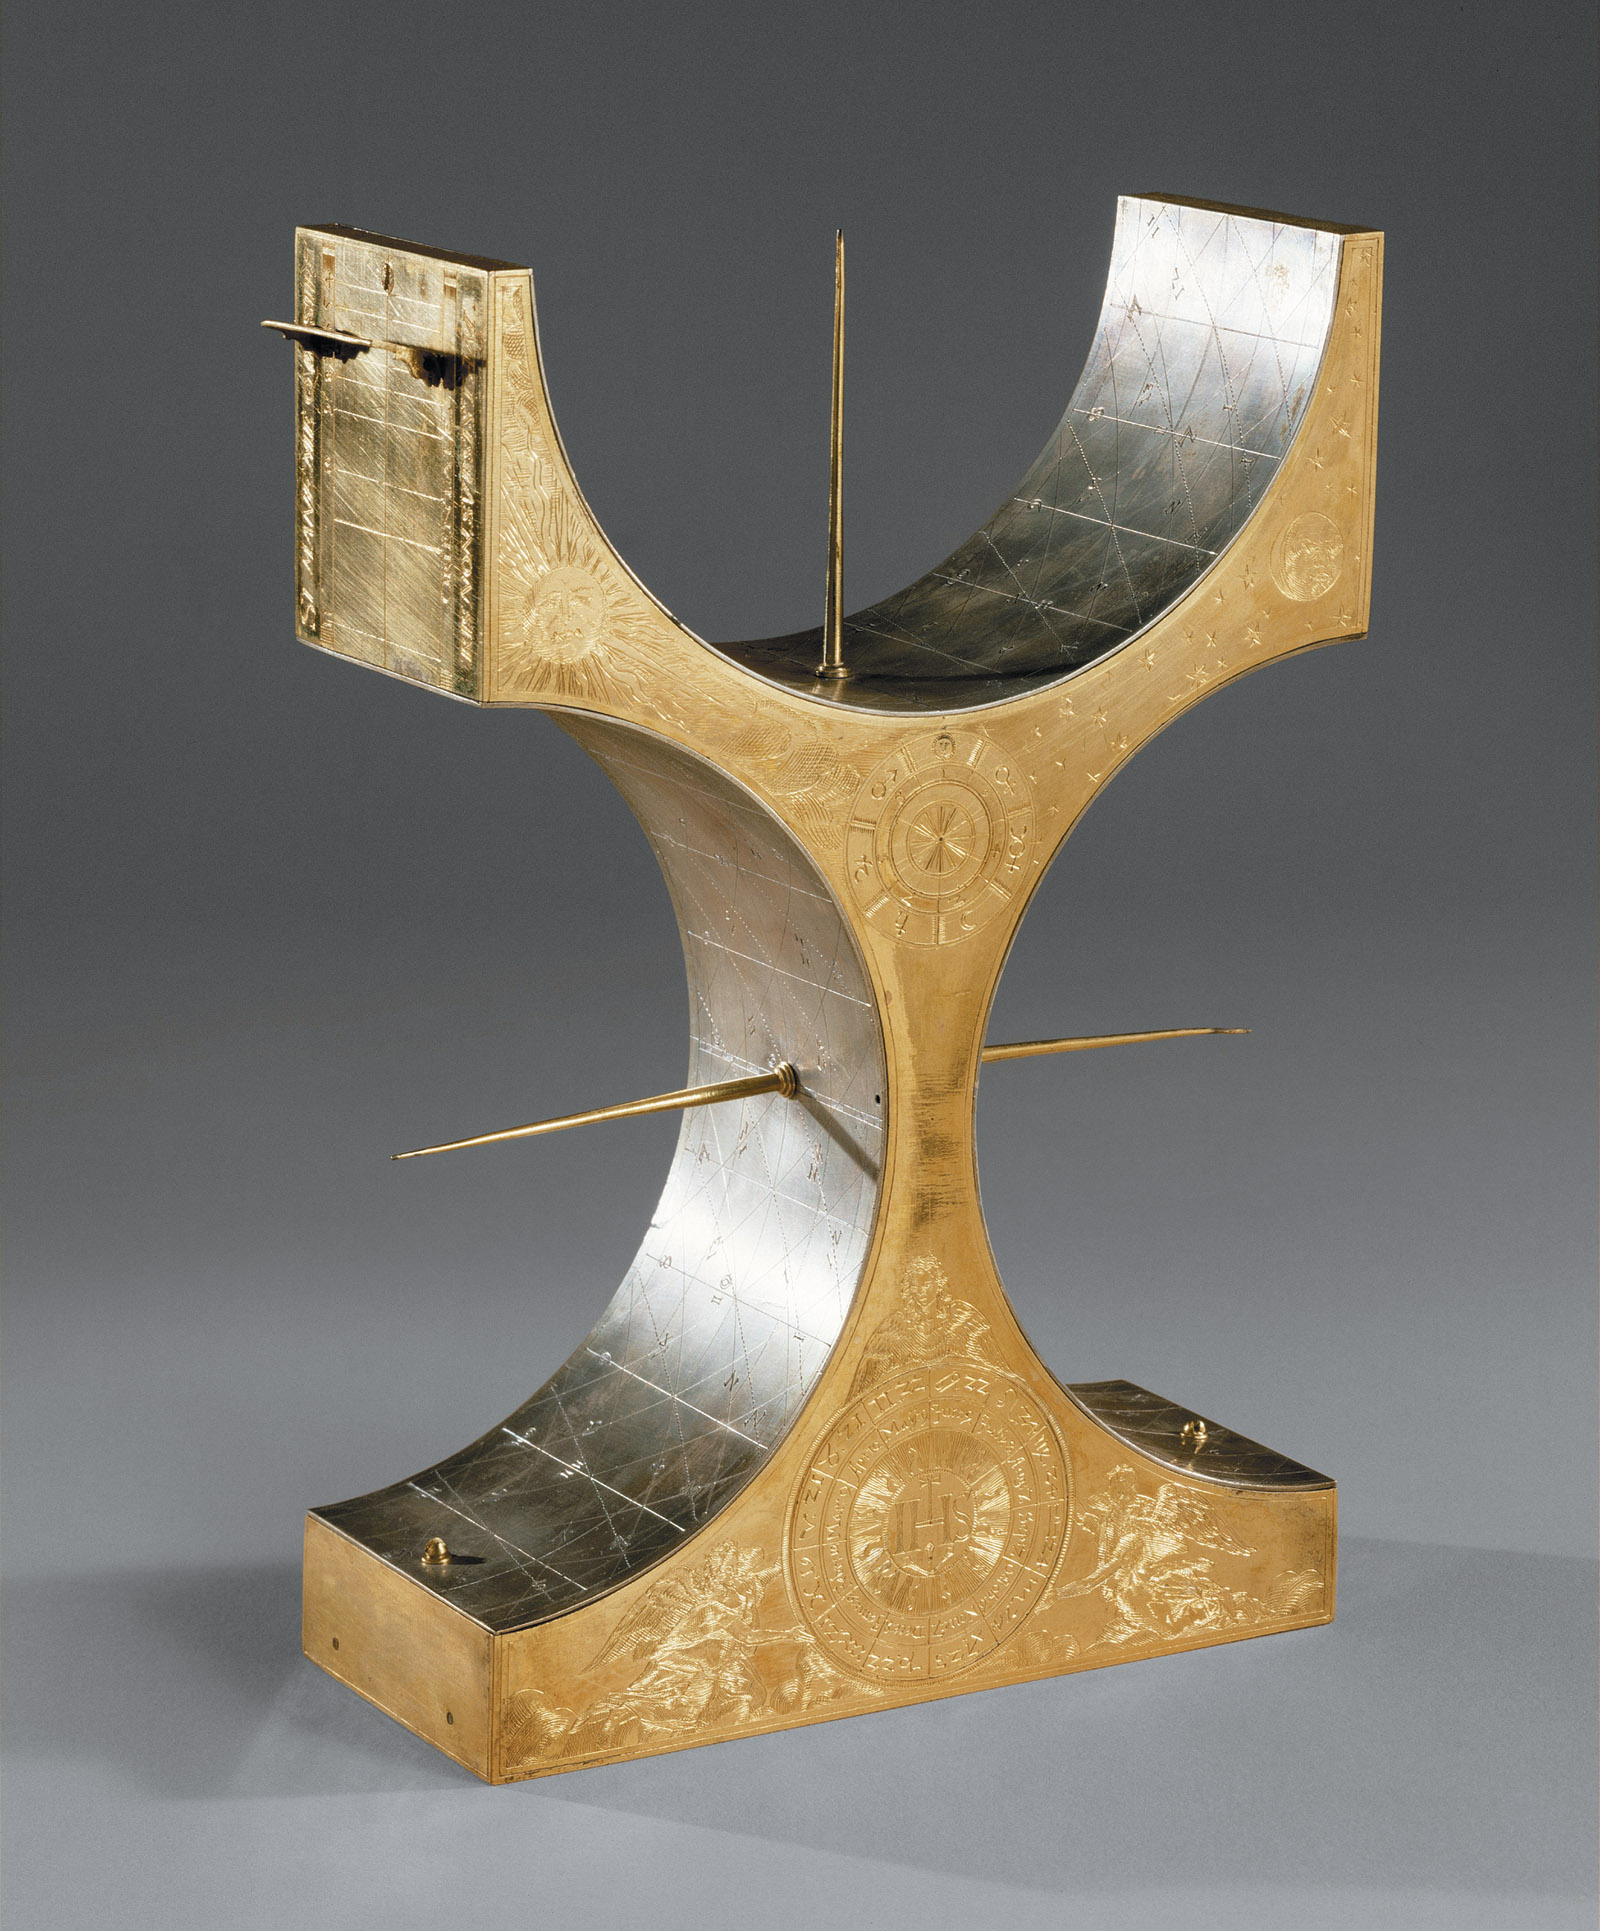 A multifaceted sundial by Wolfgang Mayr, 1604